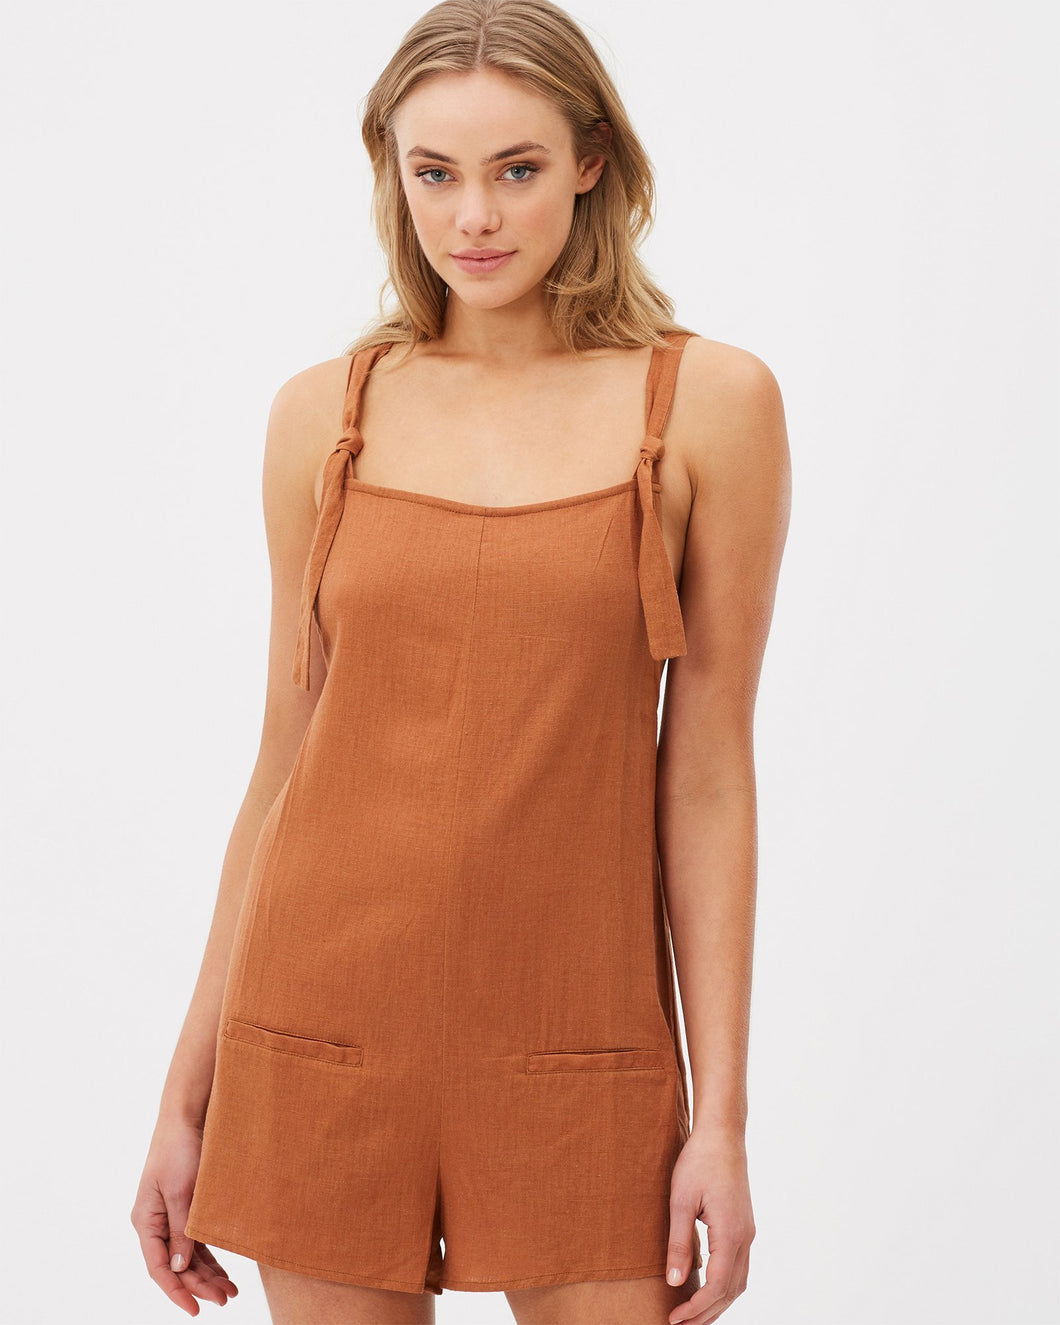 Linen romper in terracotta by Charlie Holiday